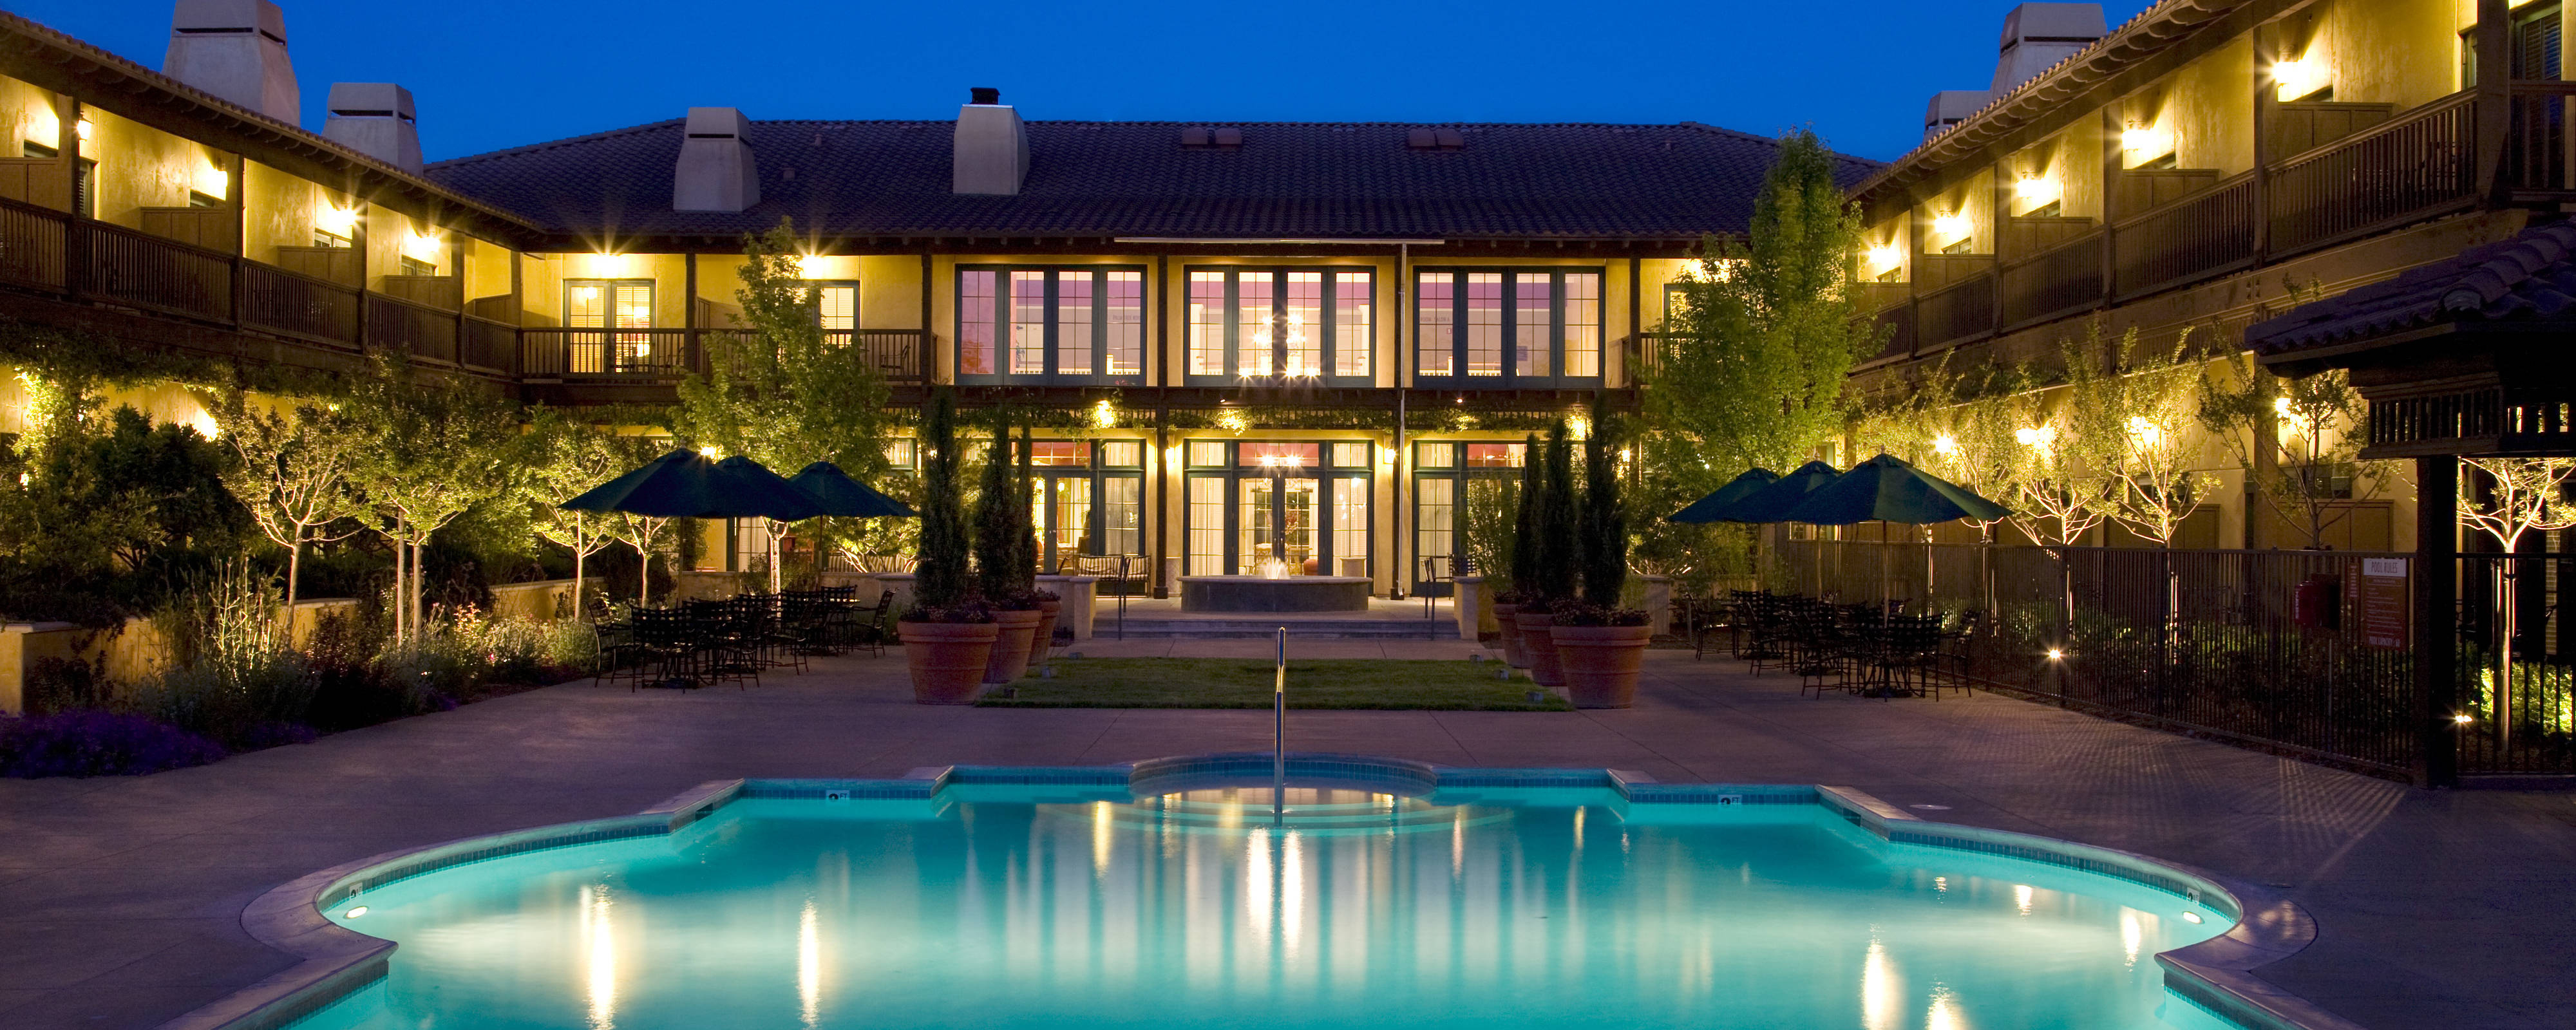 Sonoma, Ca Resort Hotel | The Lodge At Sonoma Renaissance Resort & Spa - Spg Hotels California Map